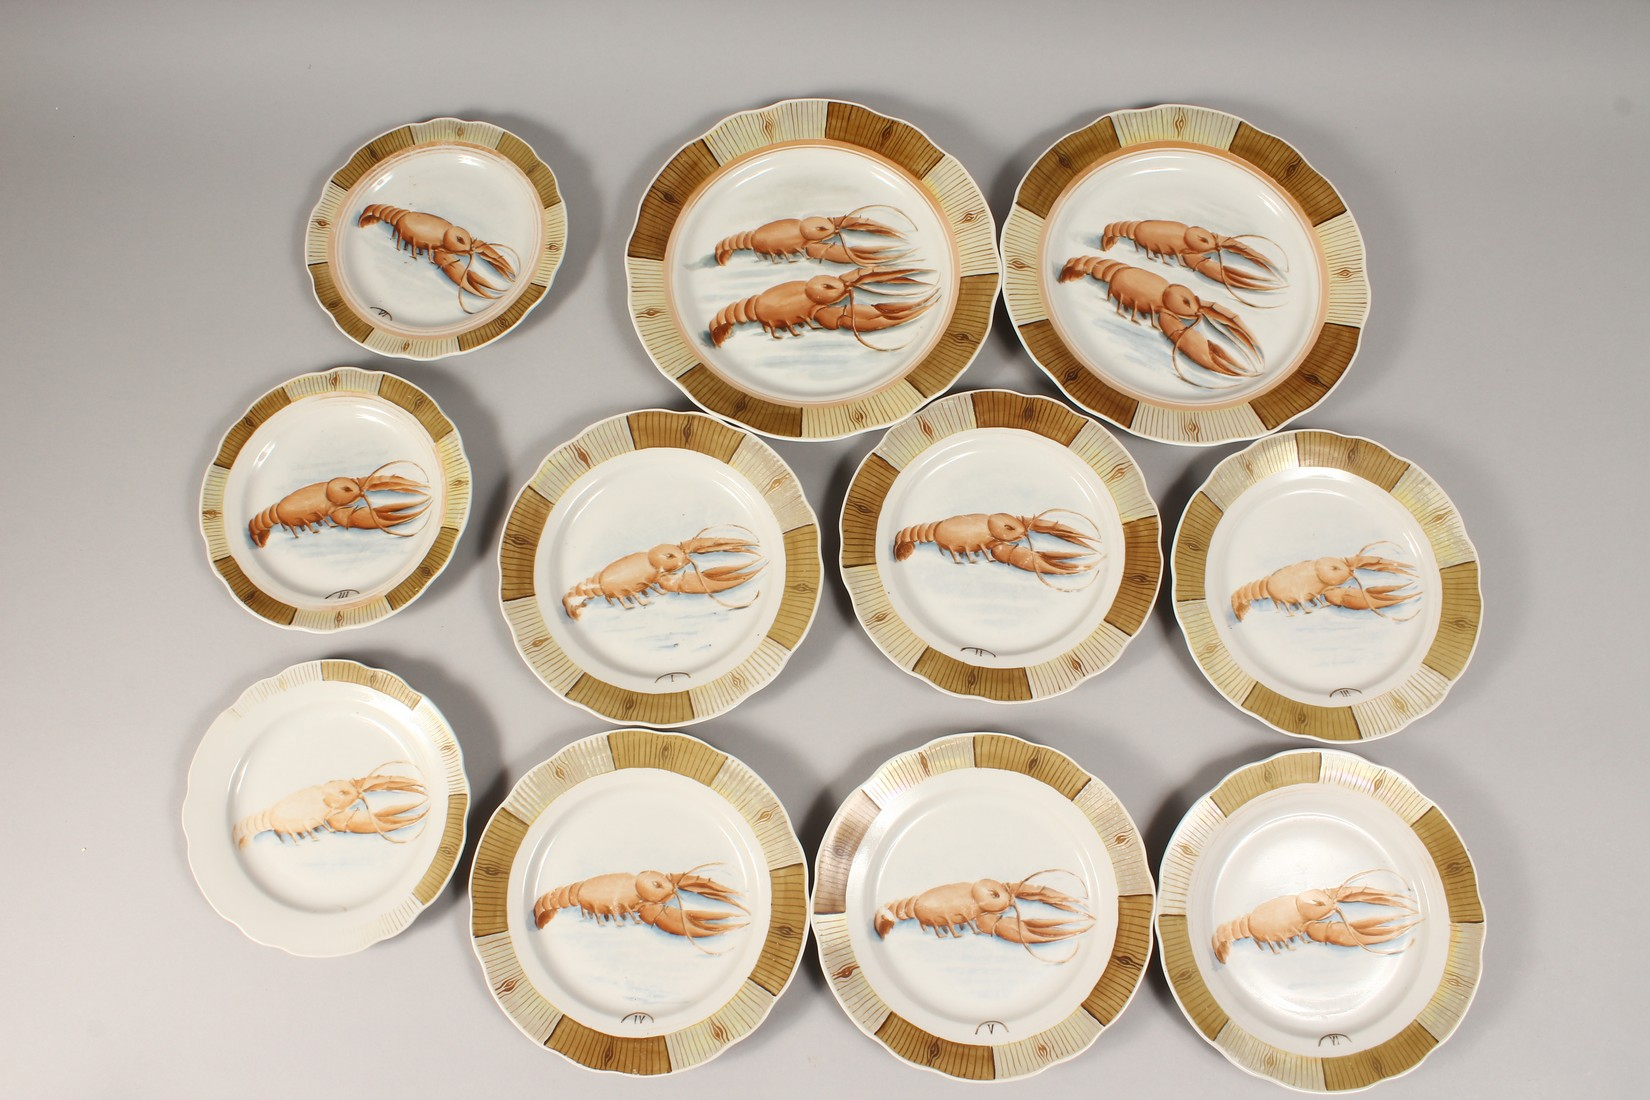 A RUSSIAN PORCELAIN SERVICE decorated with shell fish, comprising a pair of plates, 9.5ins diameter, - Image 4 of 6